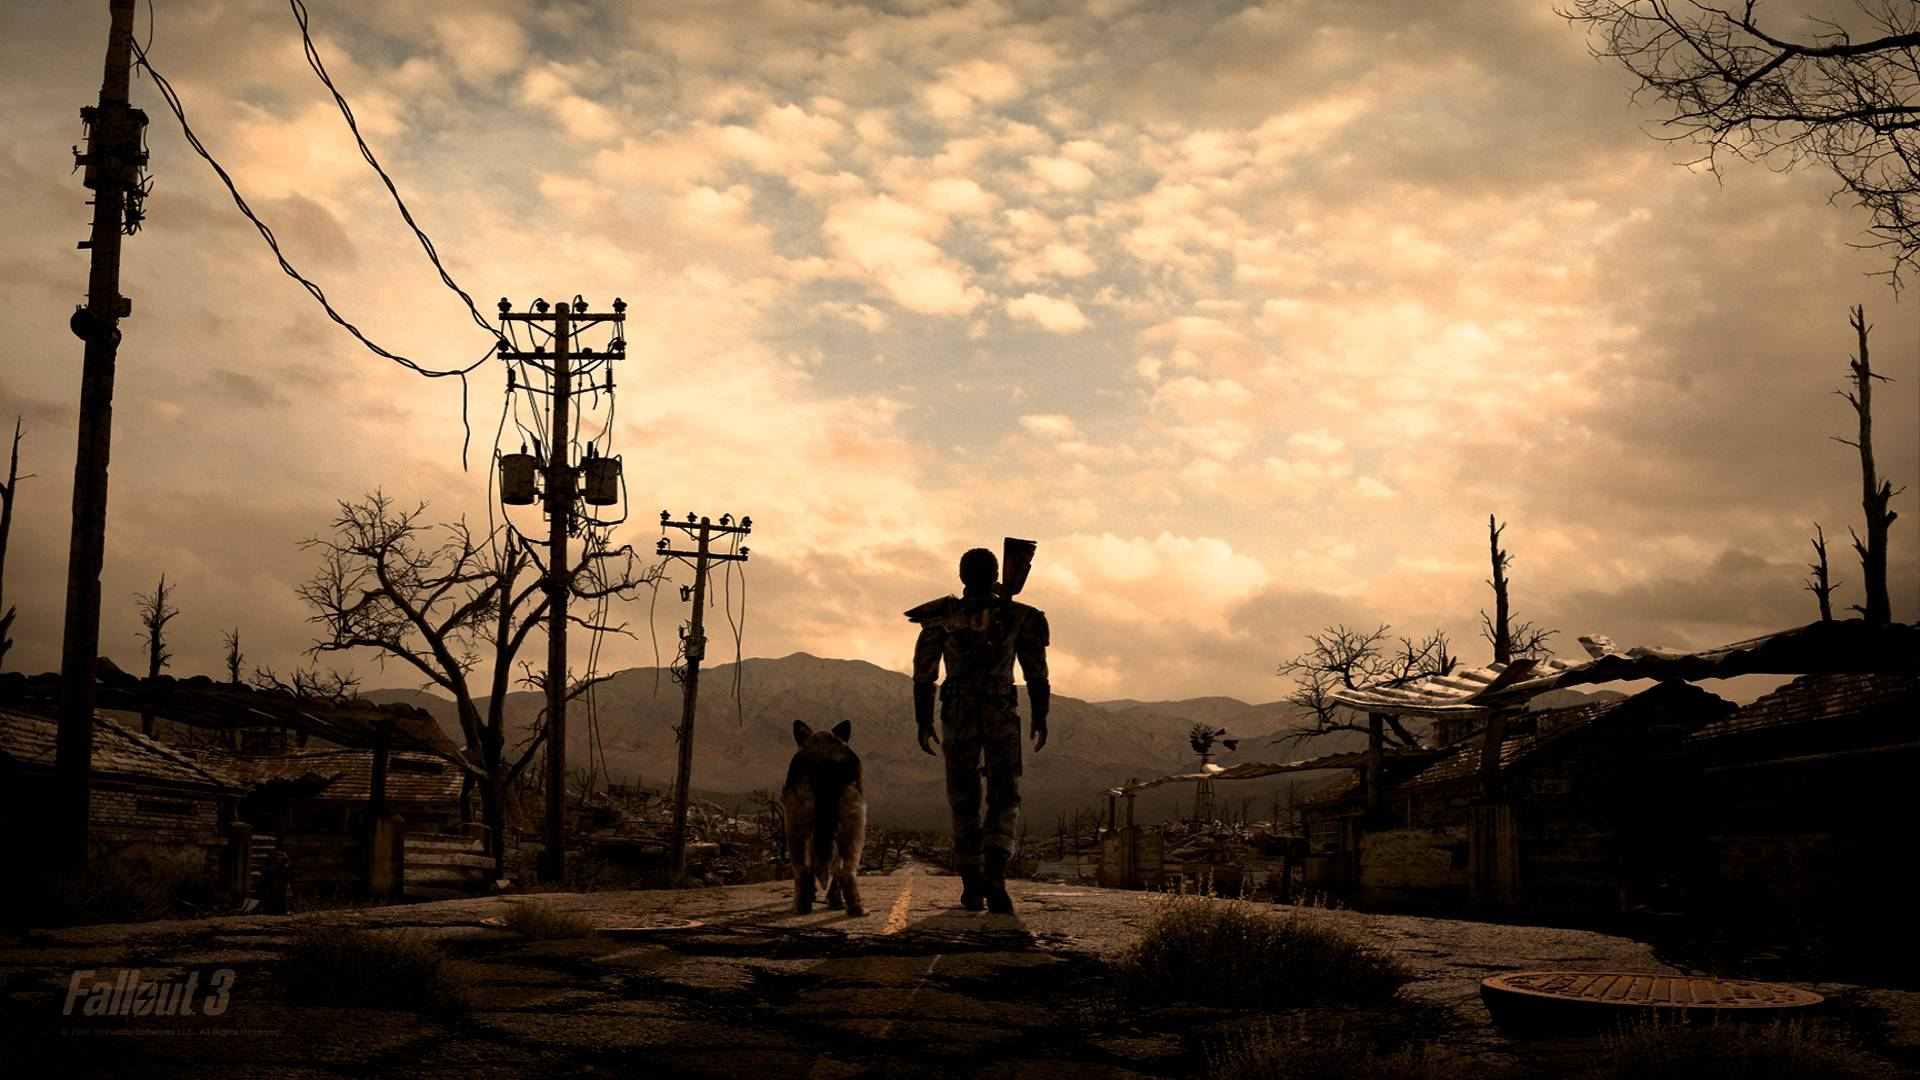 Fallout 3 Wallpapers HD - Wallpaper Cave